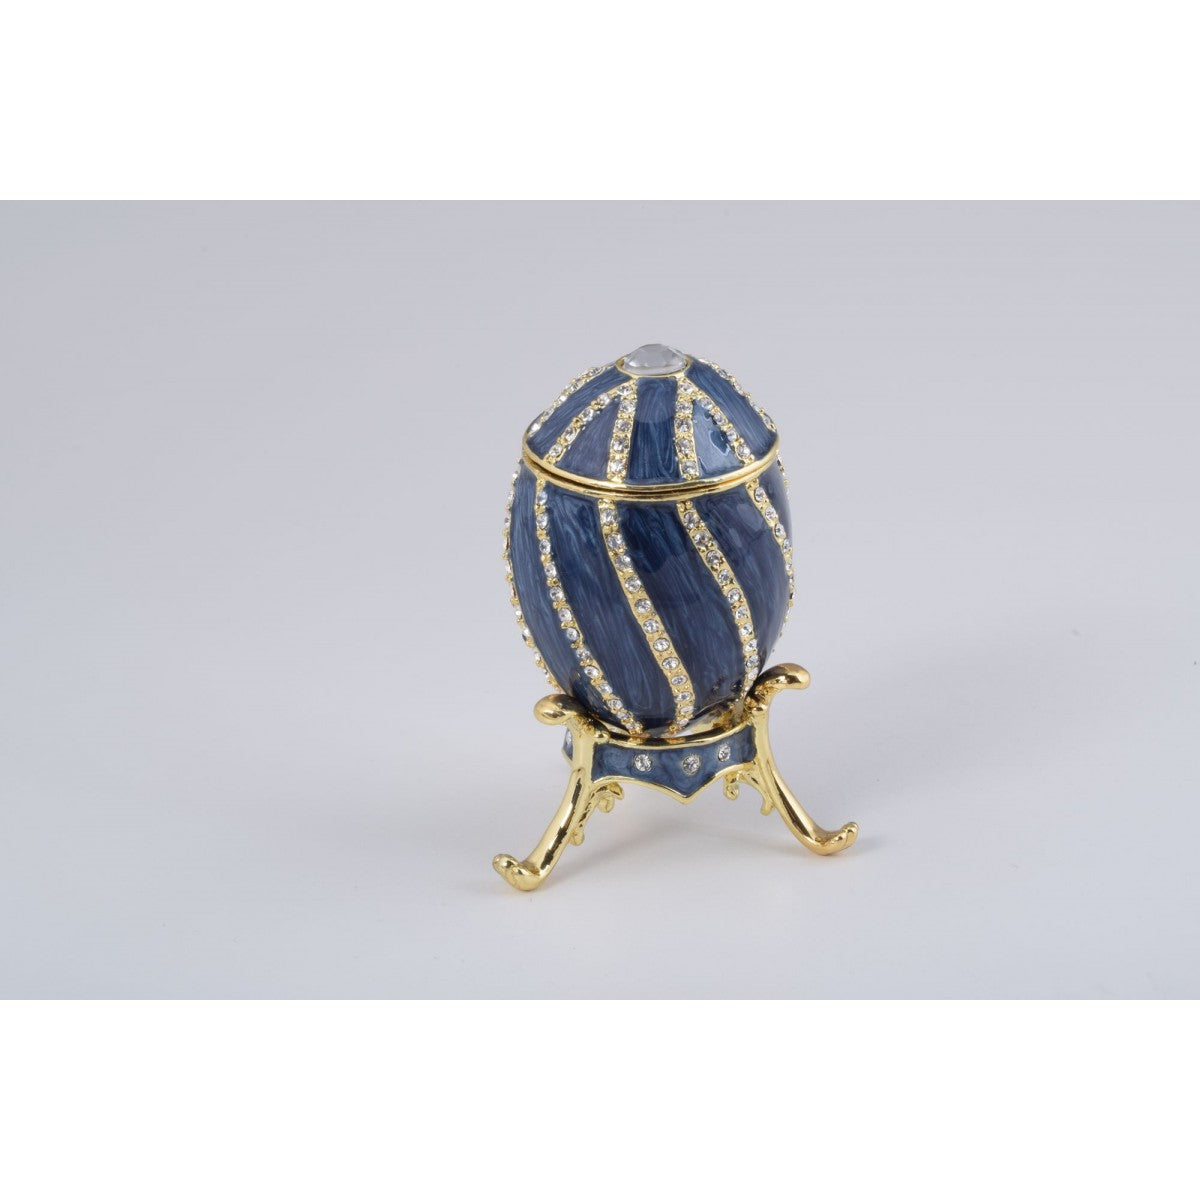 Grey Faberge Style Egg Trinket Box by Keren Kopal